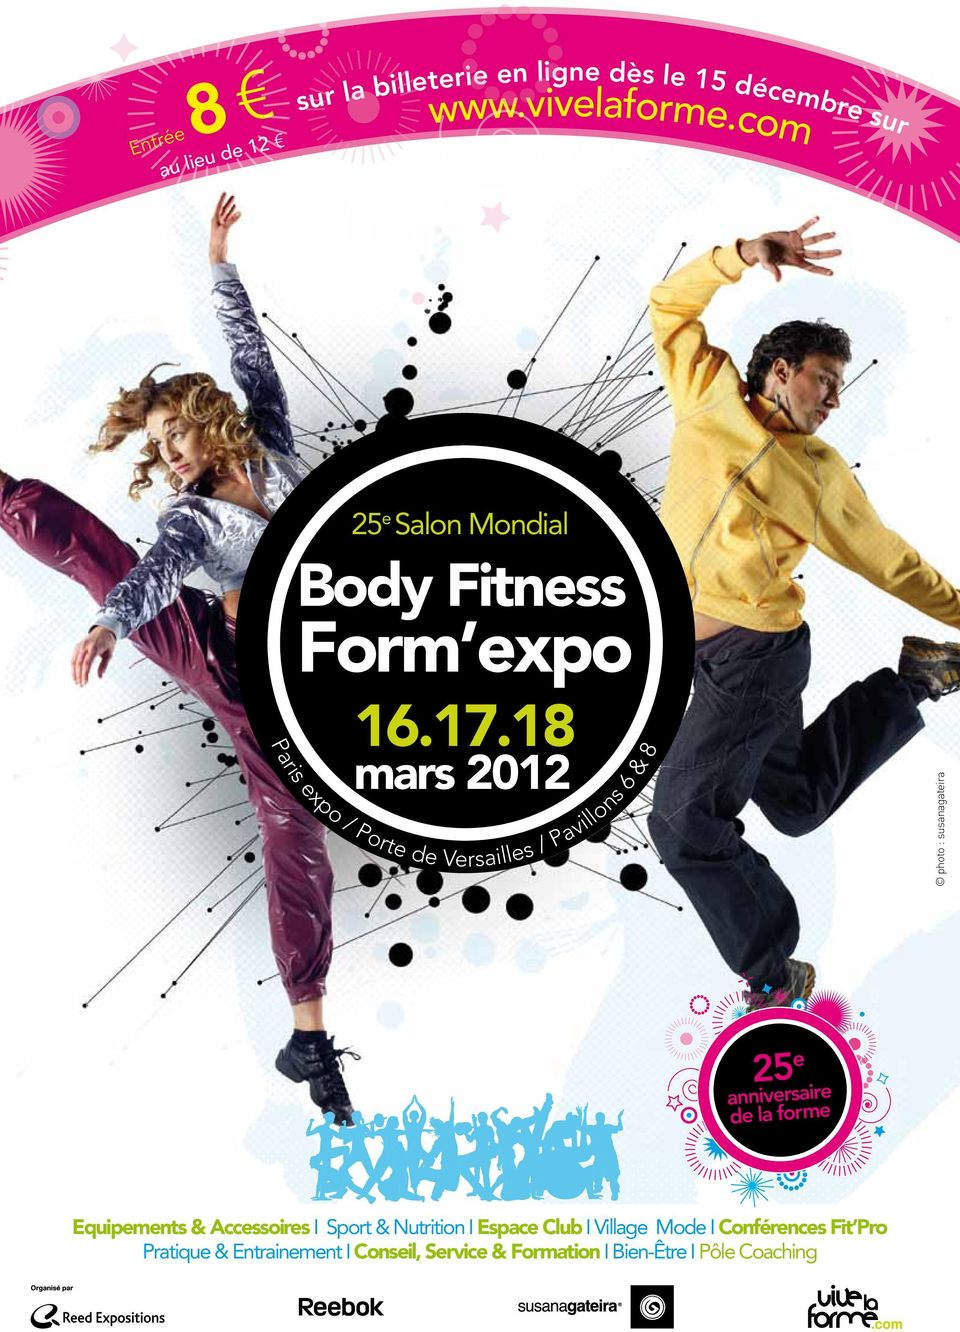 v lig vi www sur bre 25 e Salon Mondial Body Fitness Form expo 16.17.